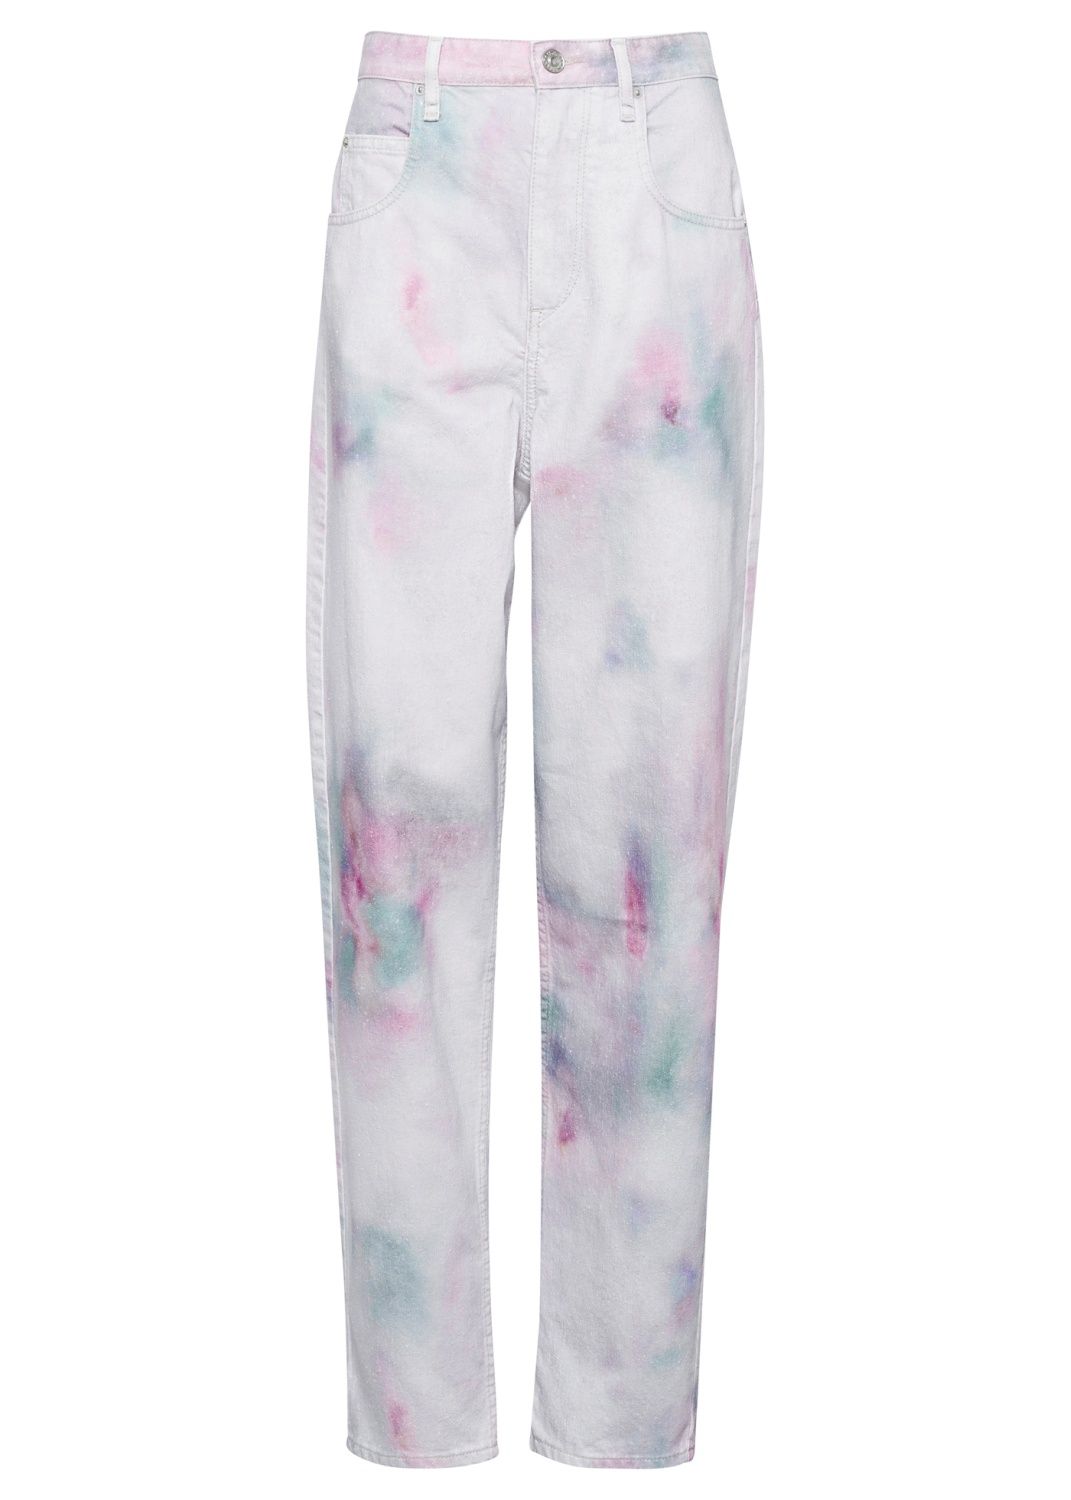 CORFY Trouser image number 0